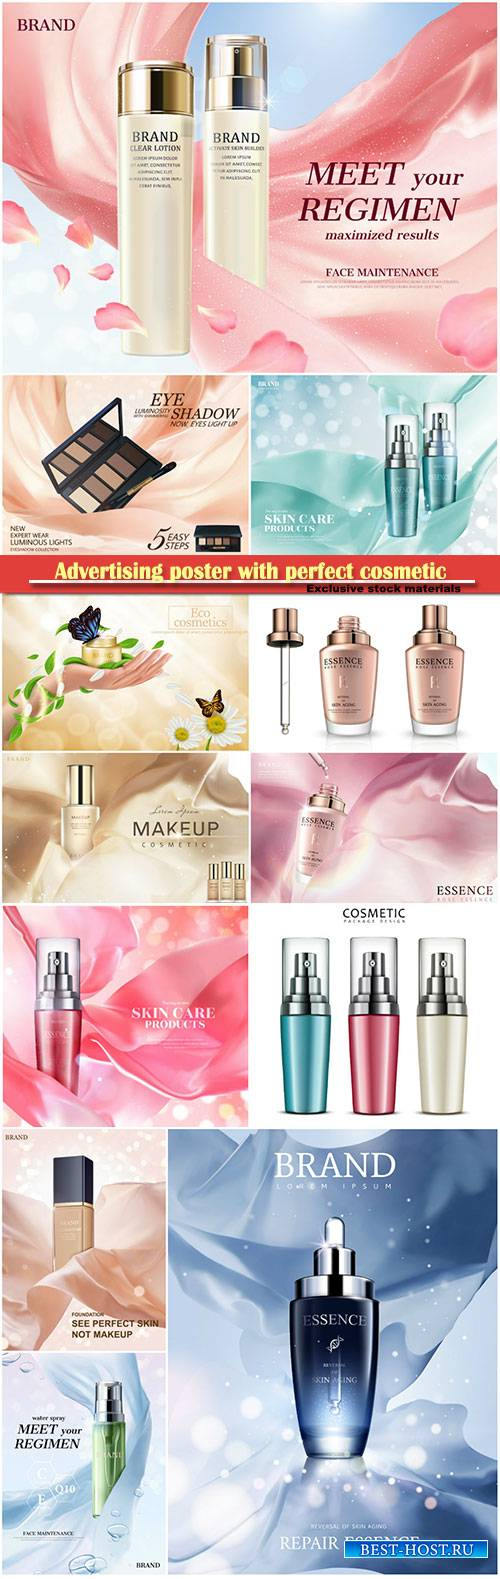 Advertising poster with perfect cosmetic product, 3d vector illustration